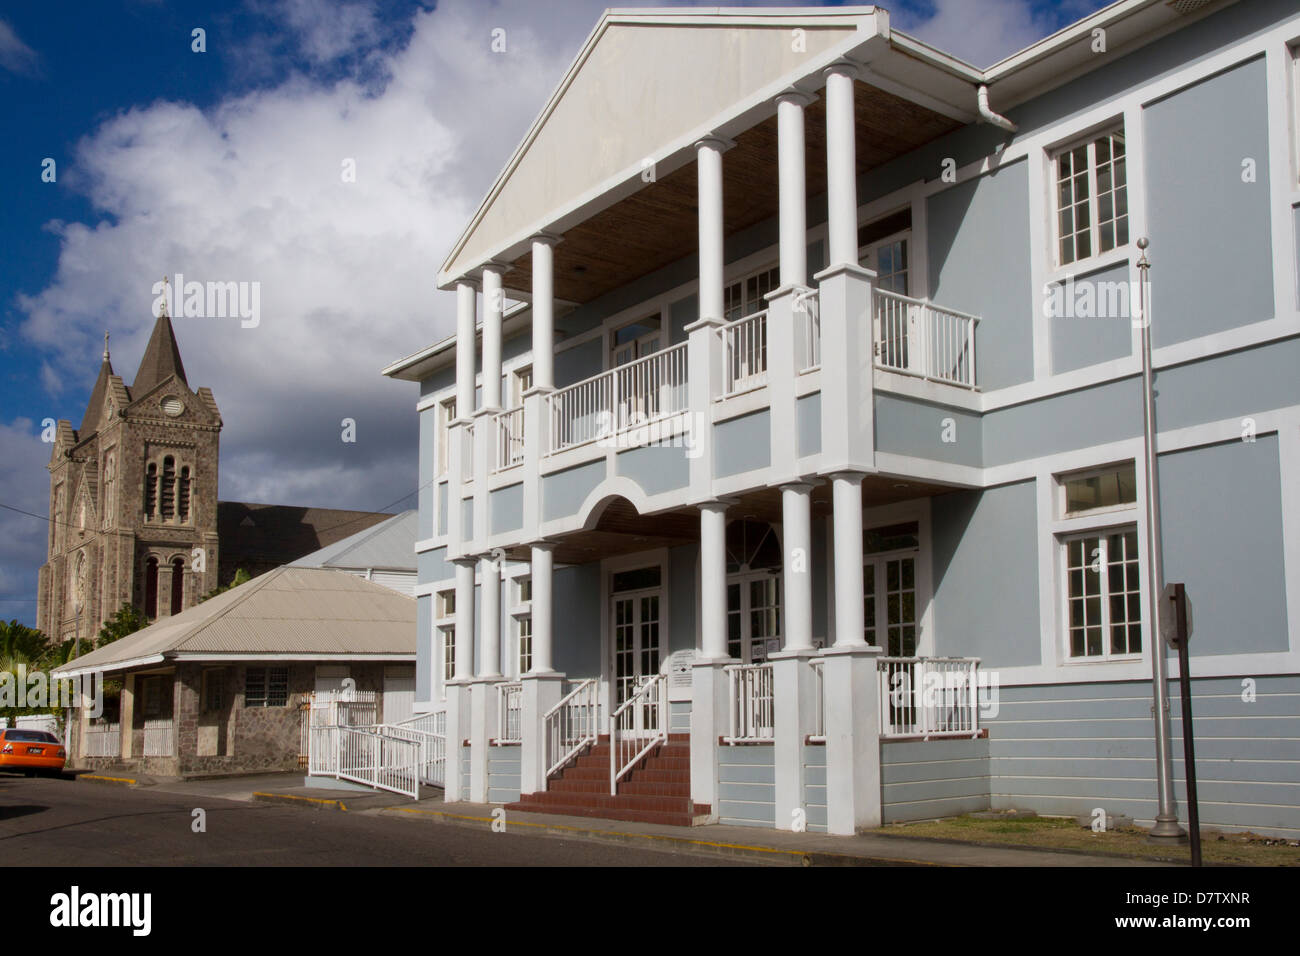 Courthouse and Roman Catholic church, Basseterre, St. Kitts, St. Kitts and Nevis, Leeward Islands, West Indies, - Stock Image